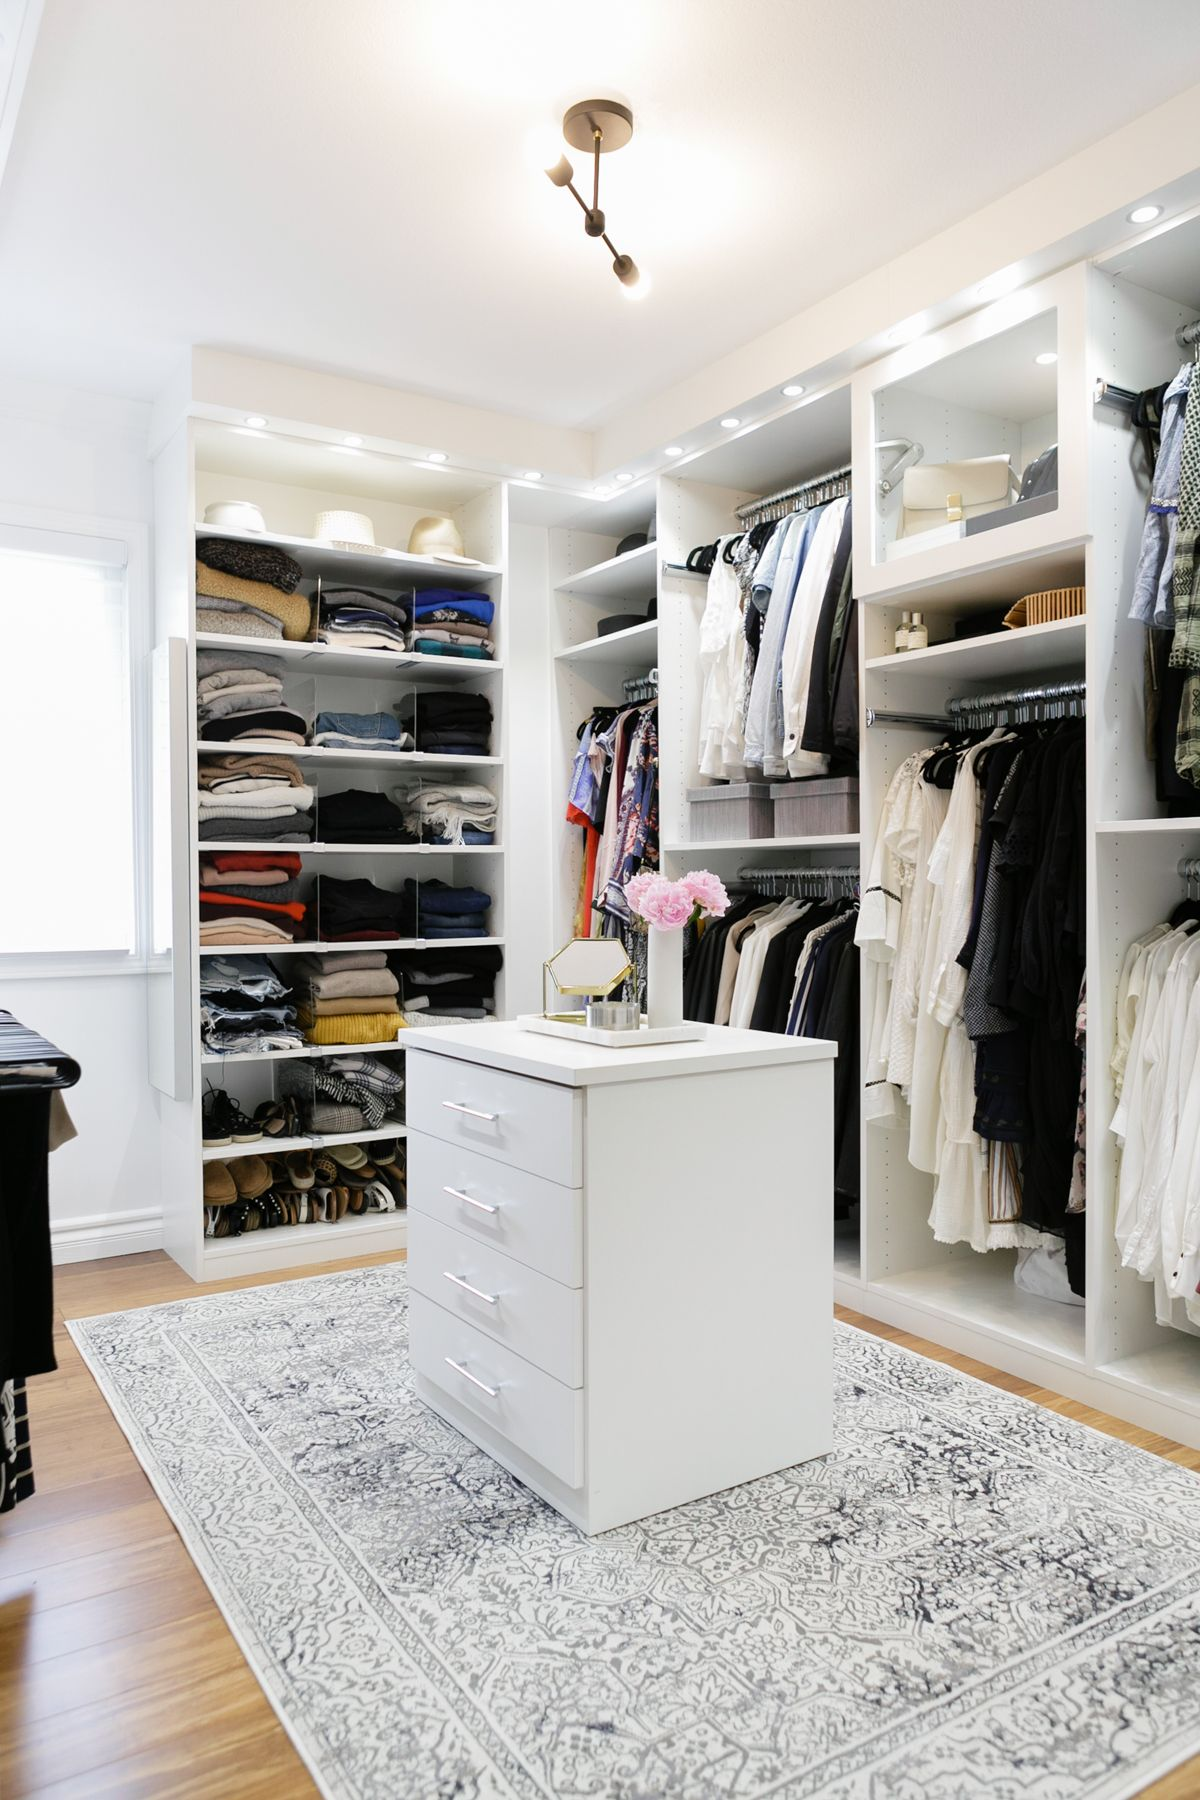 Our Home The Closet Lily Speckman Dressing Room Design Closet Designs Closet Bedroom